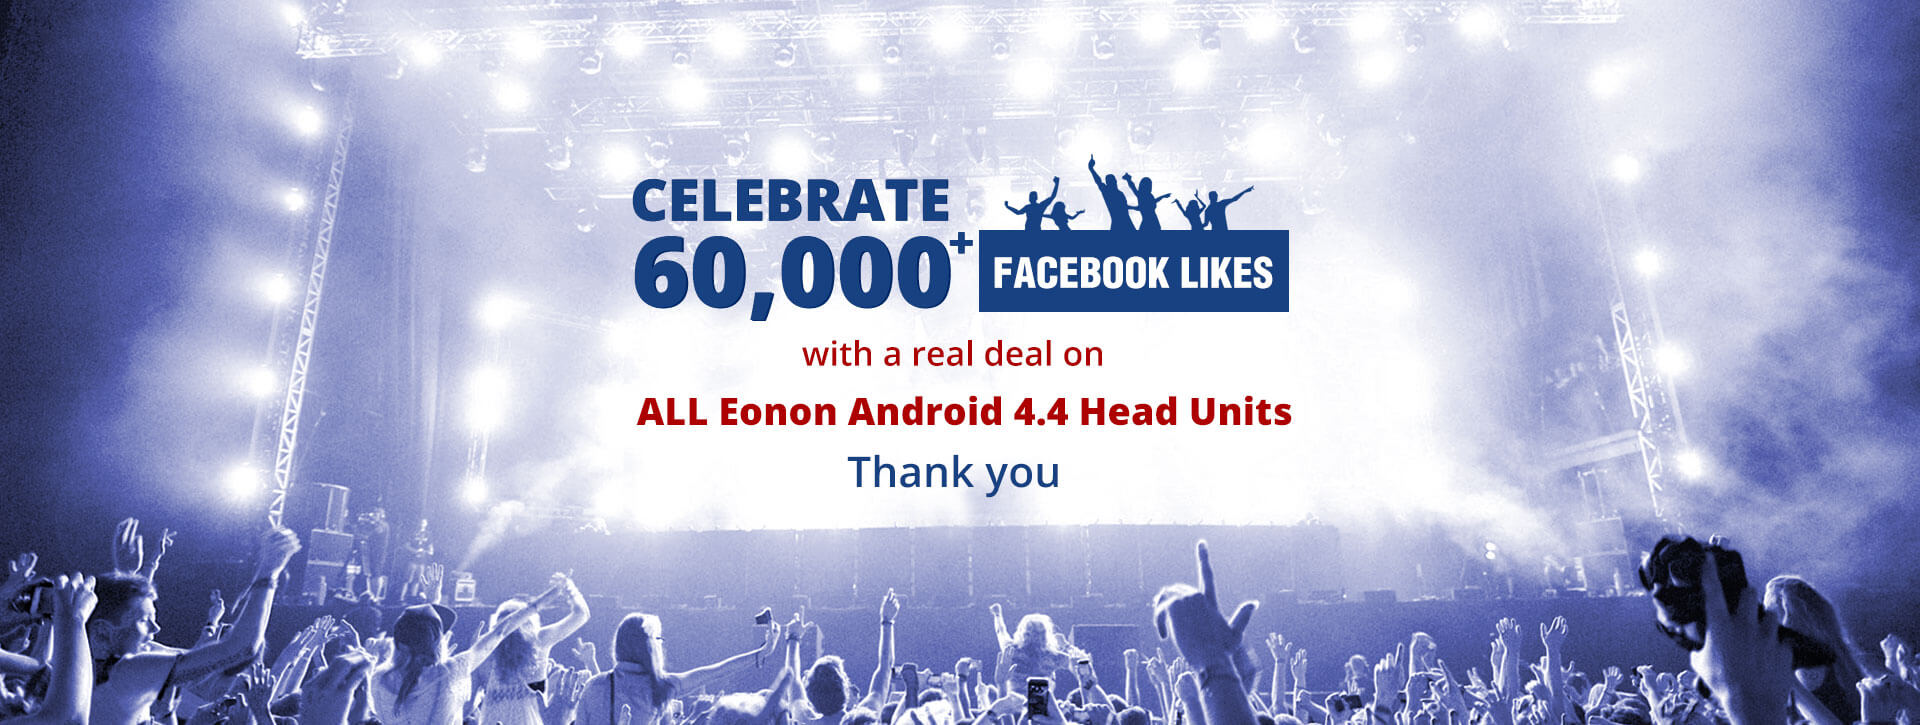 Celebrate Eonon 60,000+ FB Fans with Great Offers on Android Car Stereo